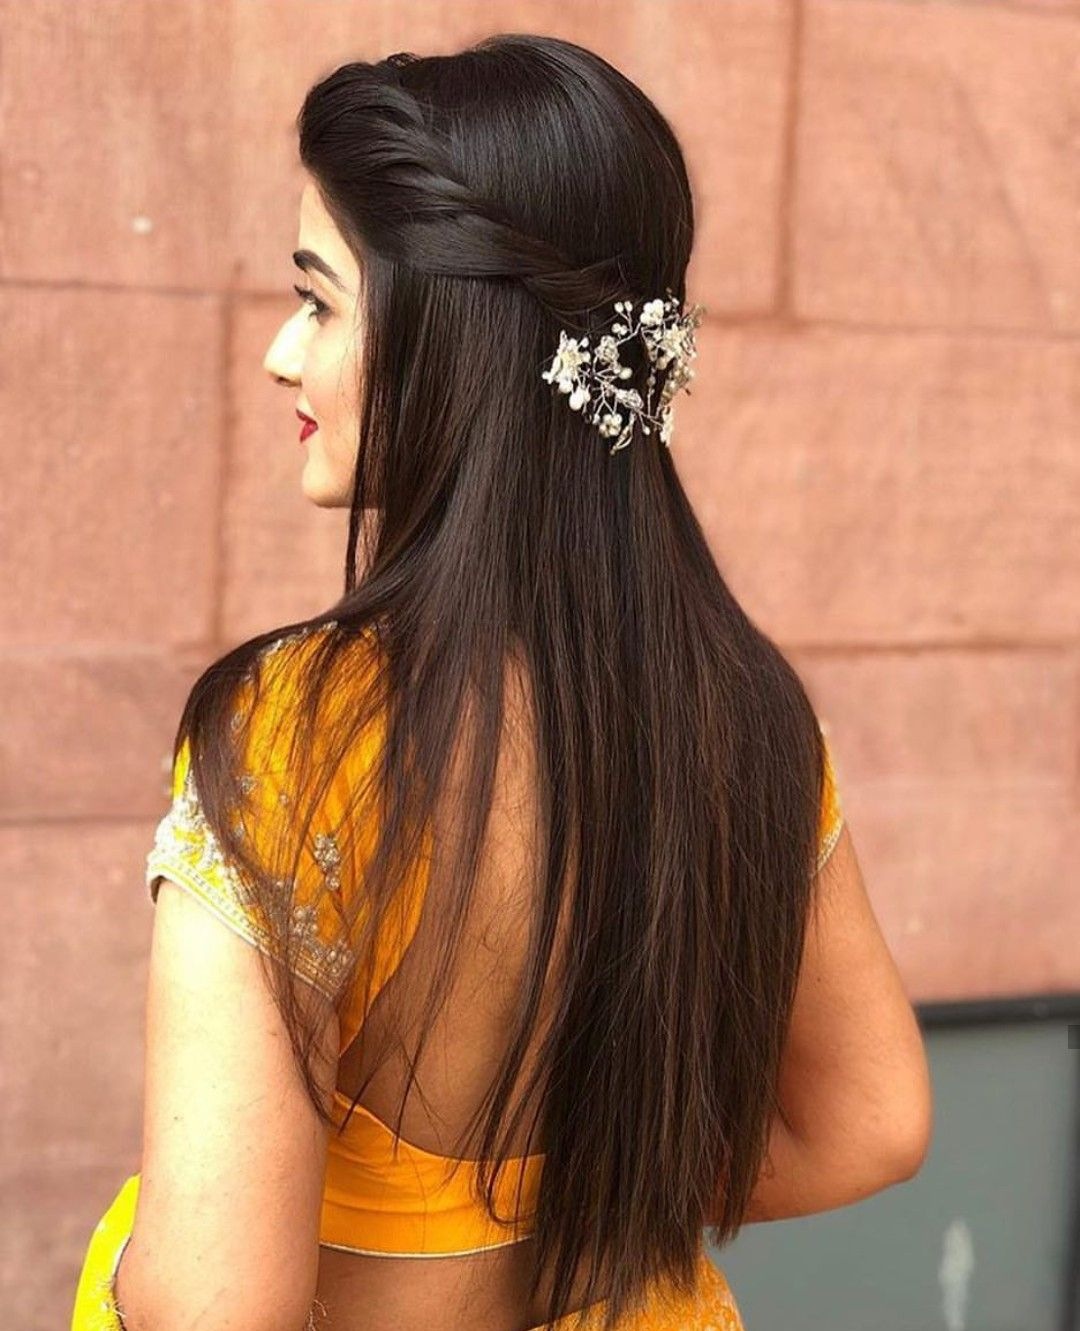 Pin by Faiba Hashmi on Beautiful Hair | Hair styles, Engagement hairstyles, Long  hair styles